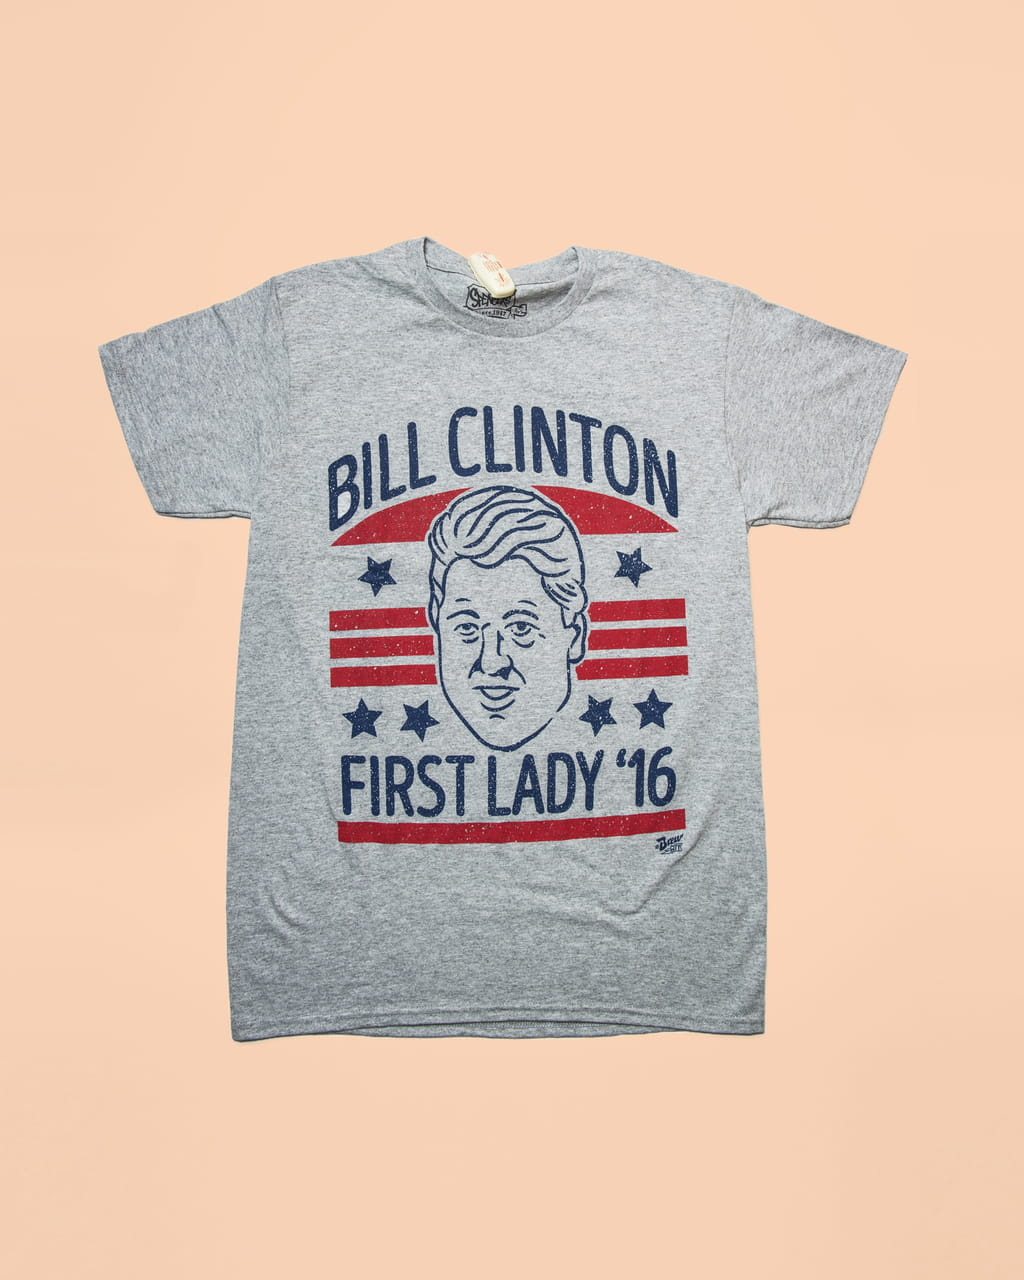 Photo of a grey t-shirt saying 'Bill Clinton, first lady '16' on a salmon coloured background